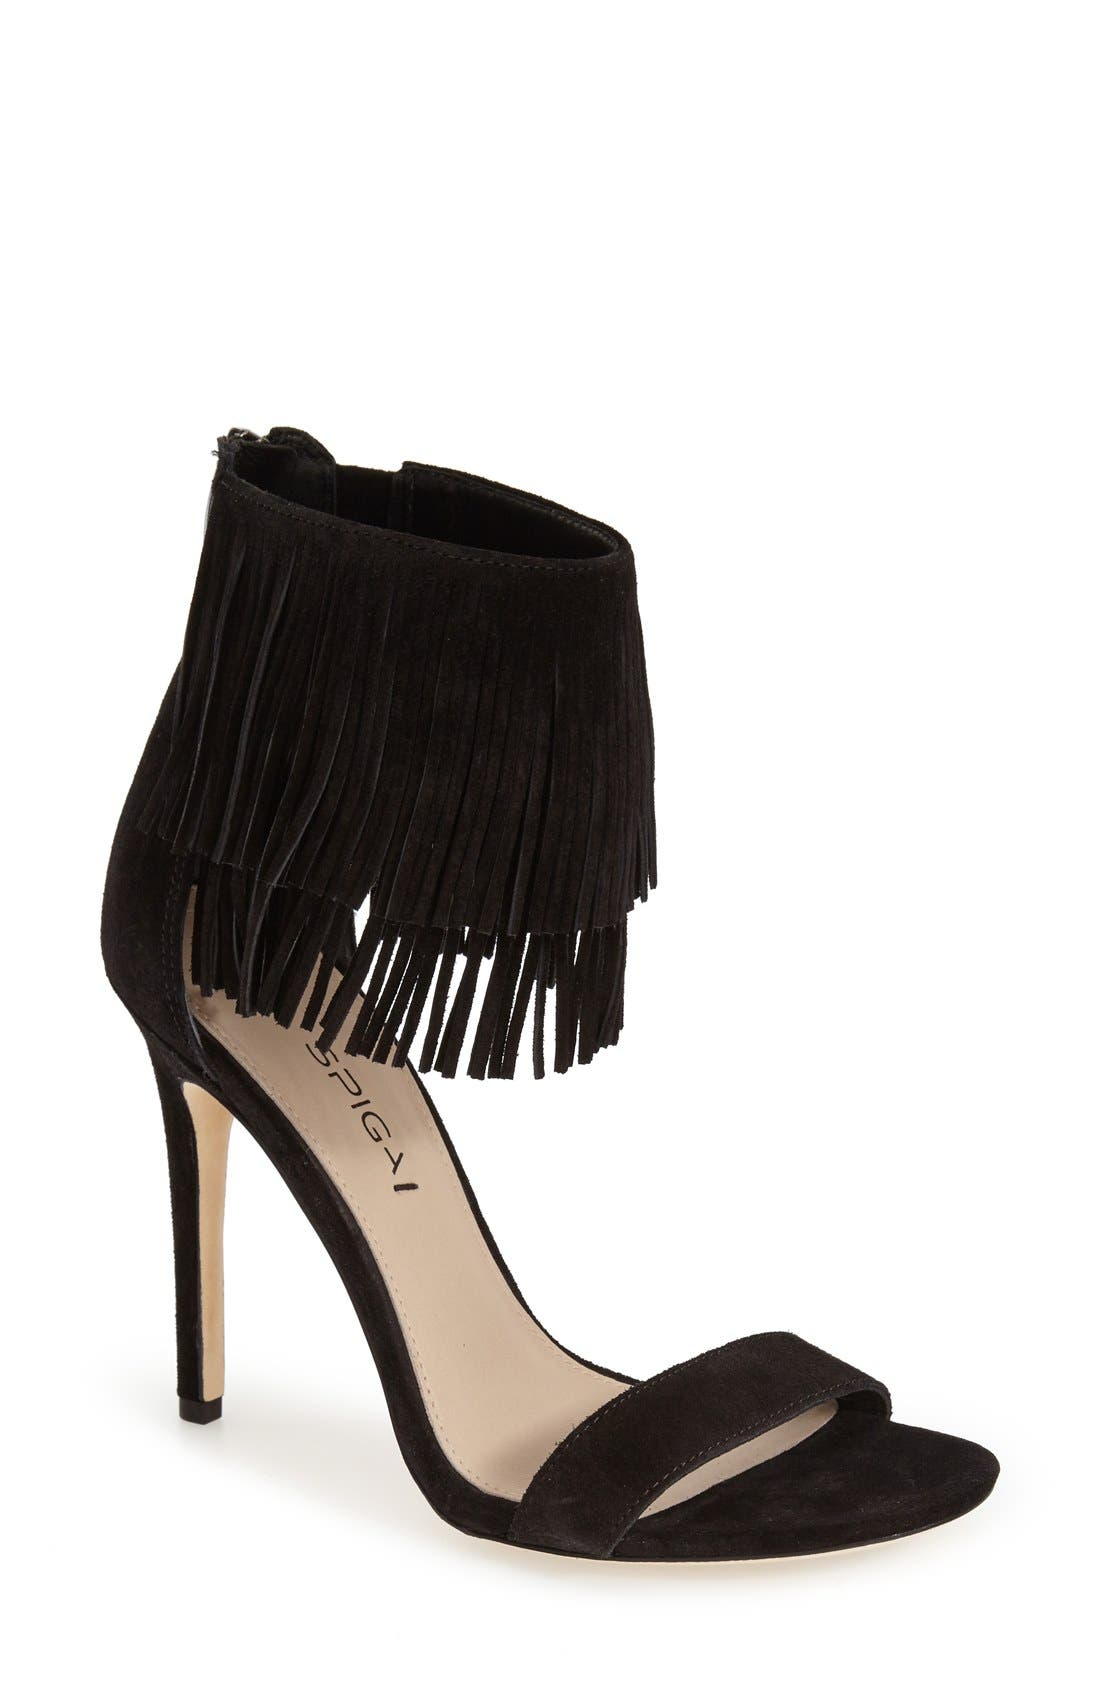 Alternate Image 1 Selected - Via Spiga 'Tabia' Fringe Sandal (Women)